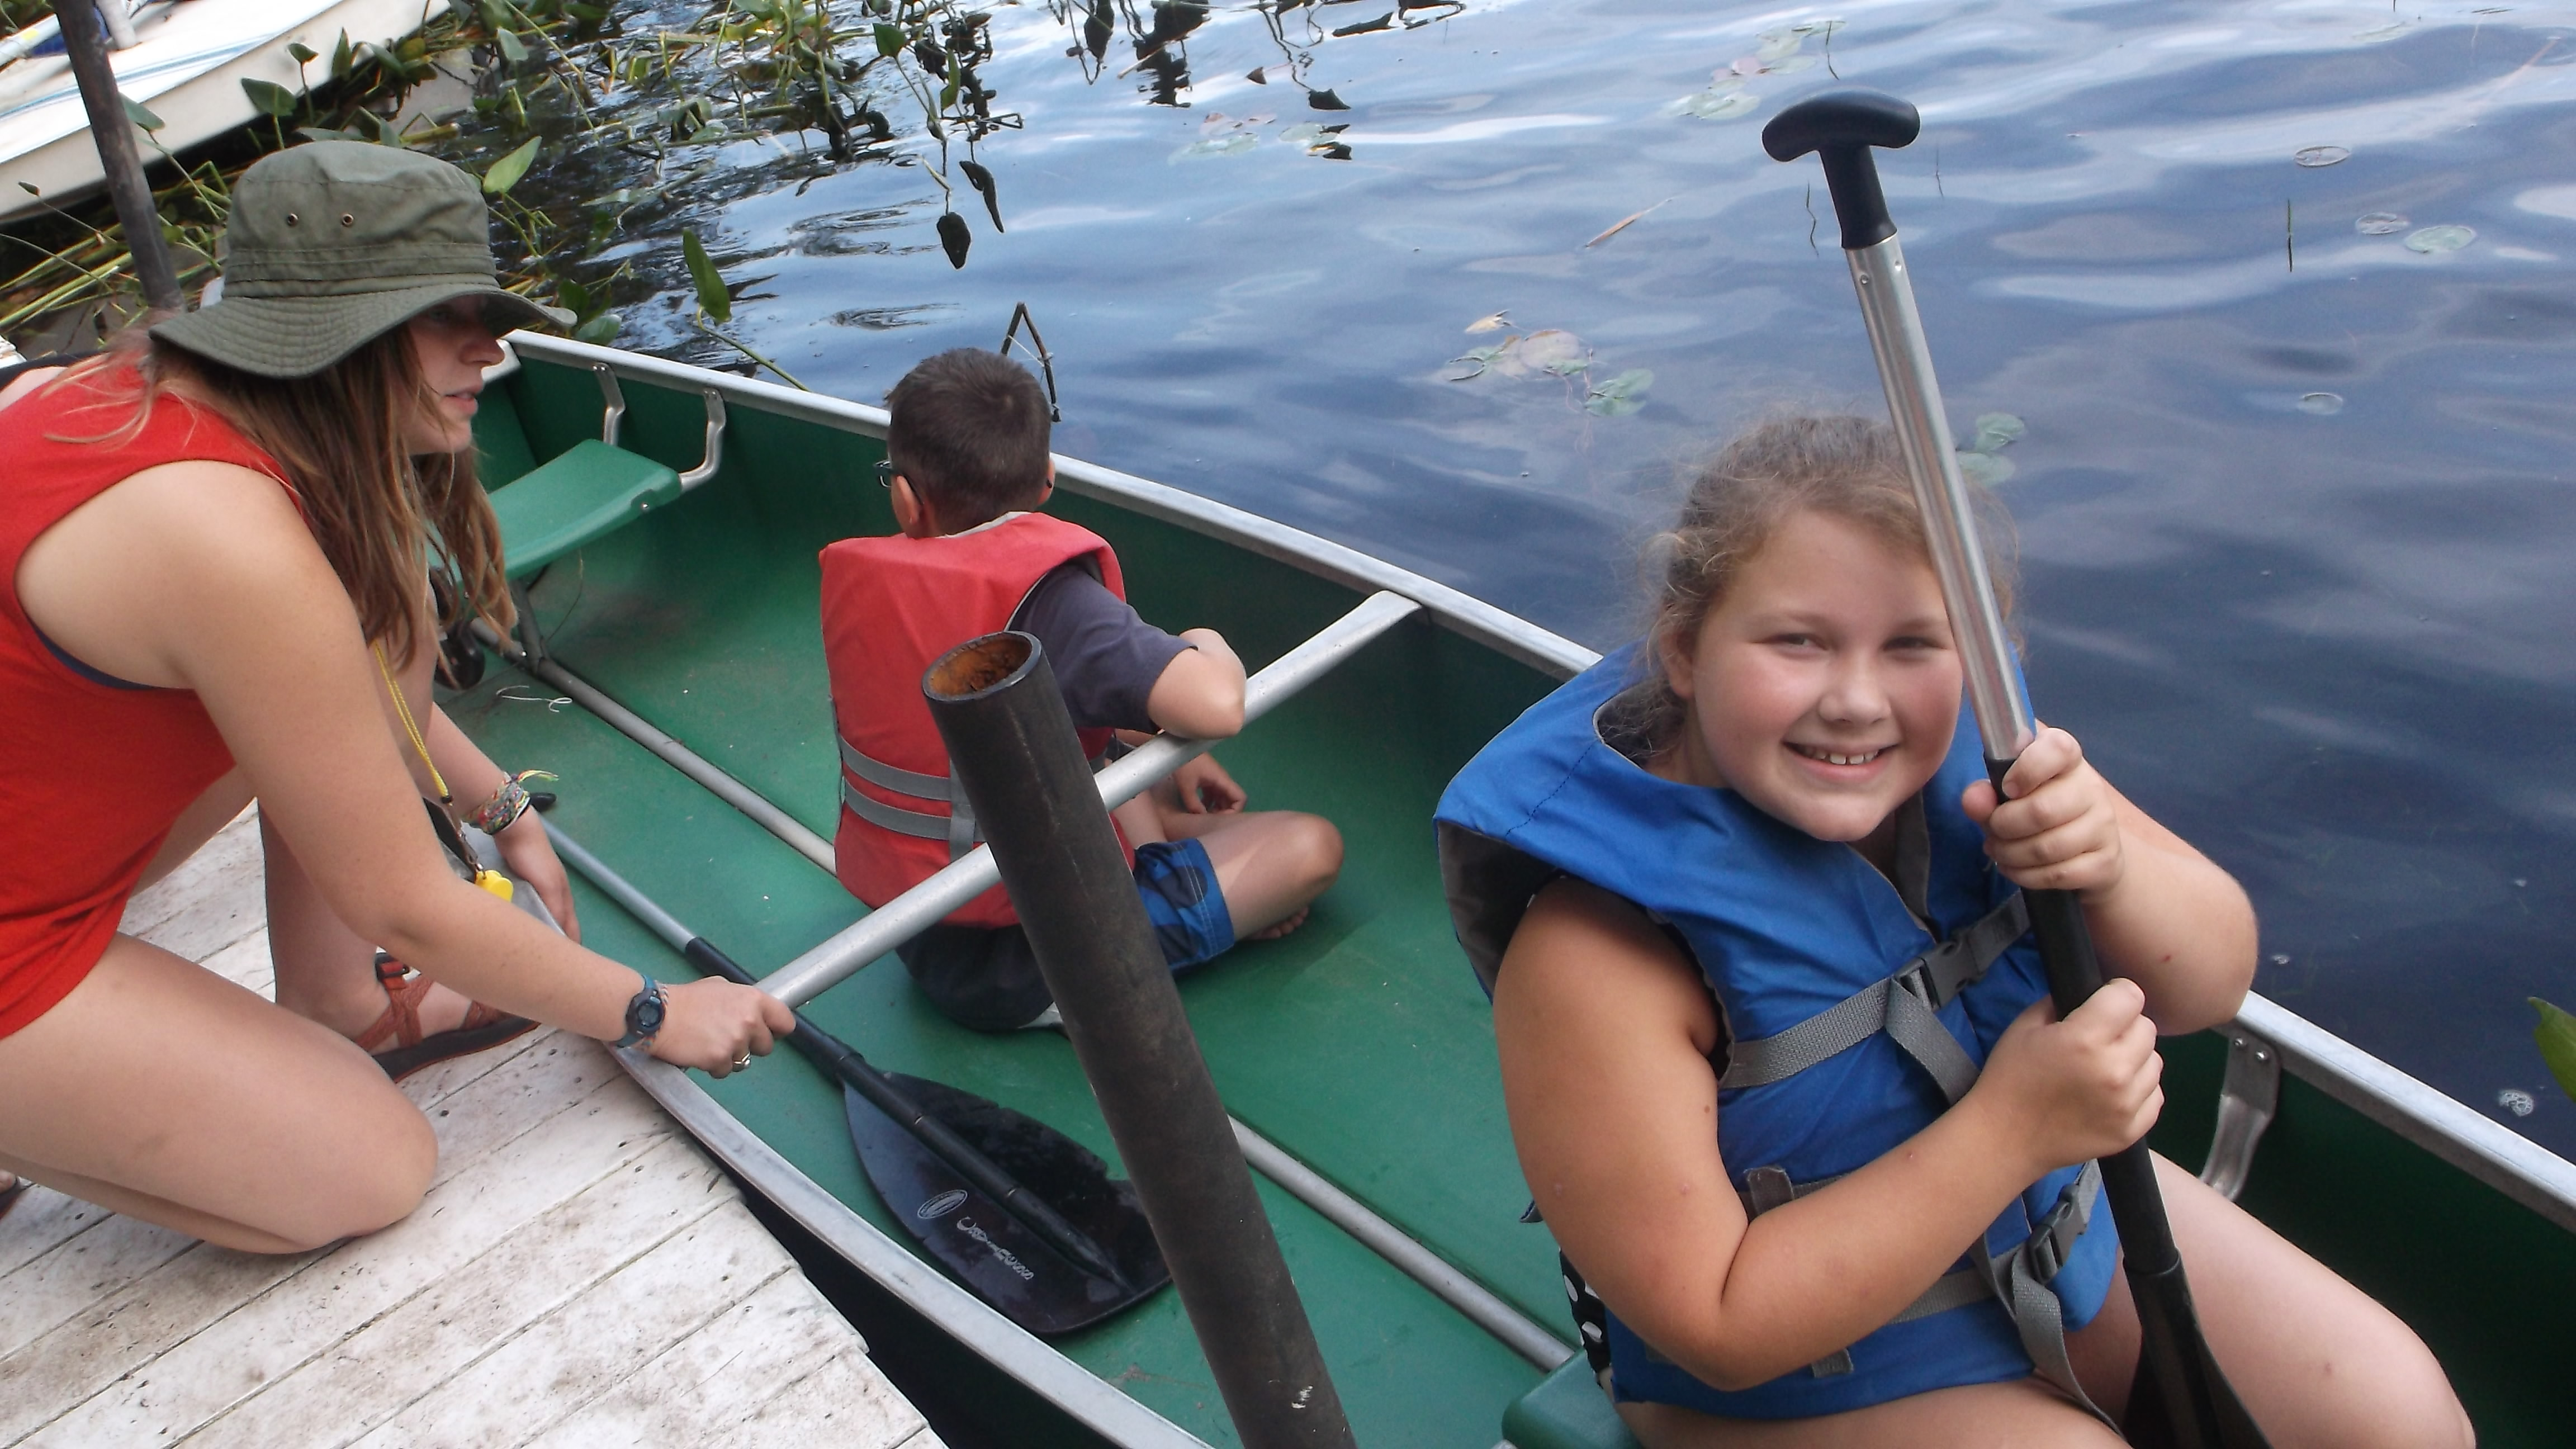 Summer Program - Counselors in Training | Camp Wiyaka : Boating, Swimming, Sports, Arts & Crafts & More!